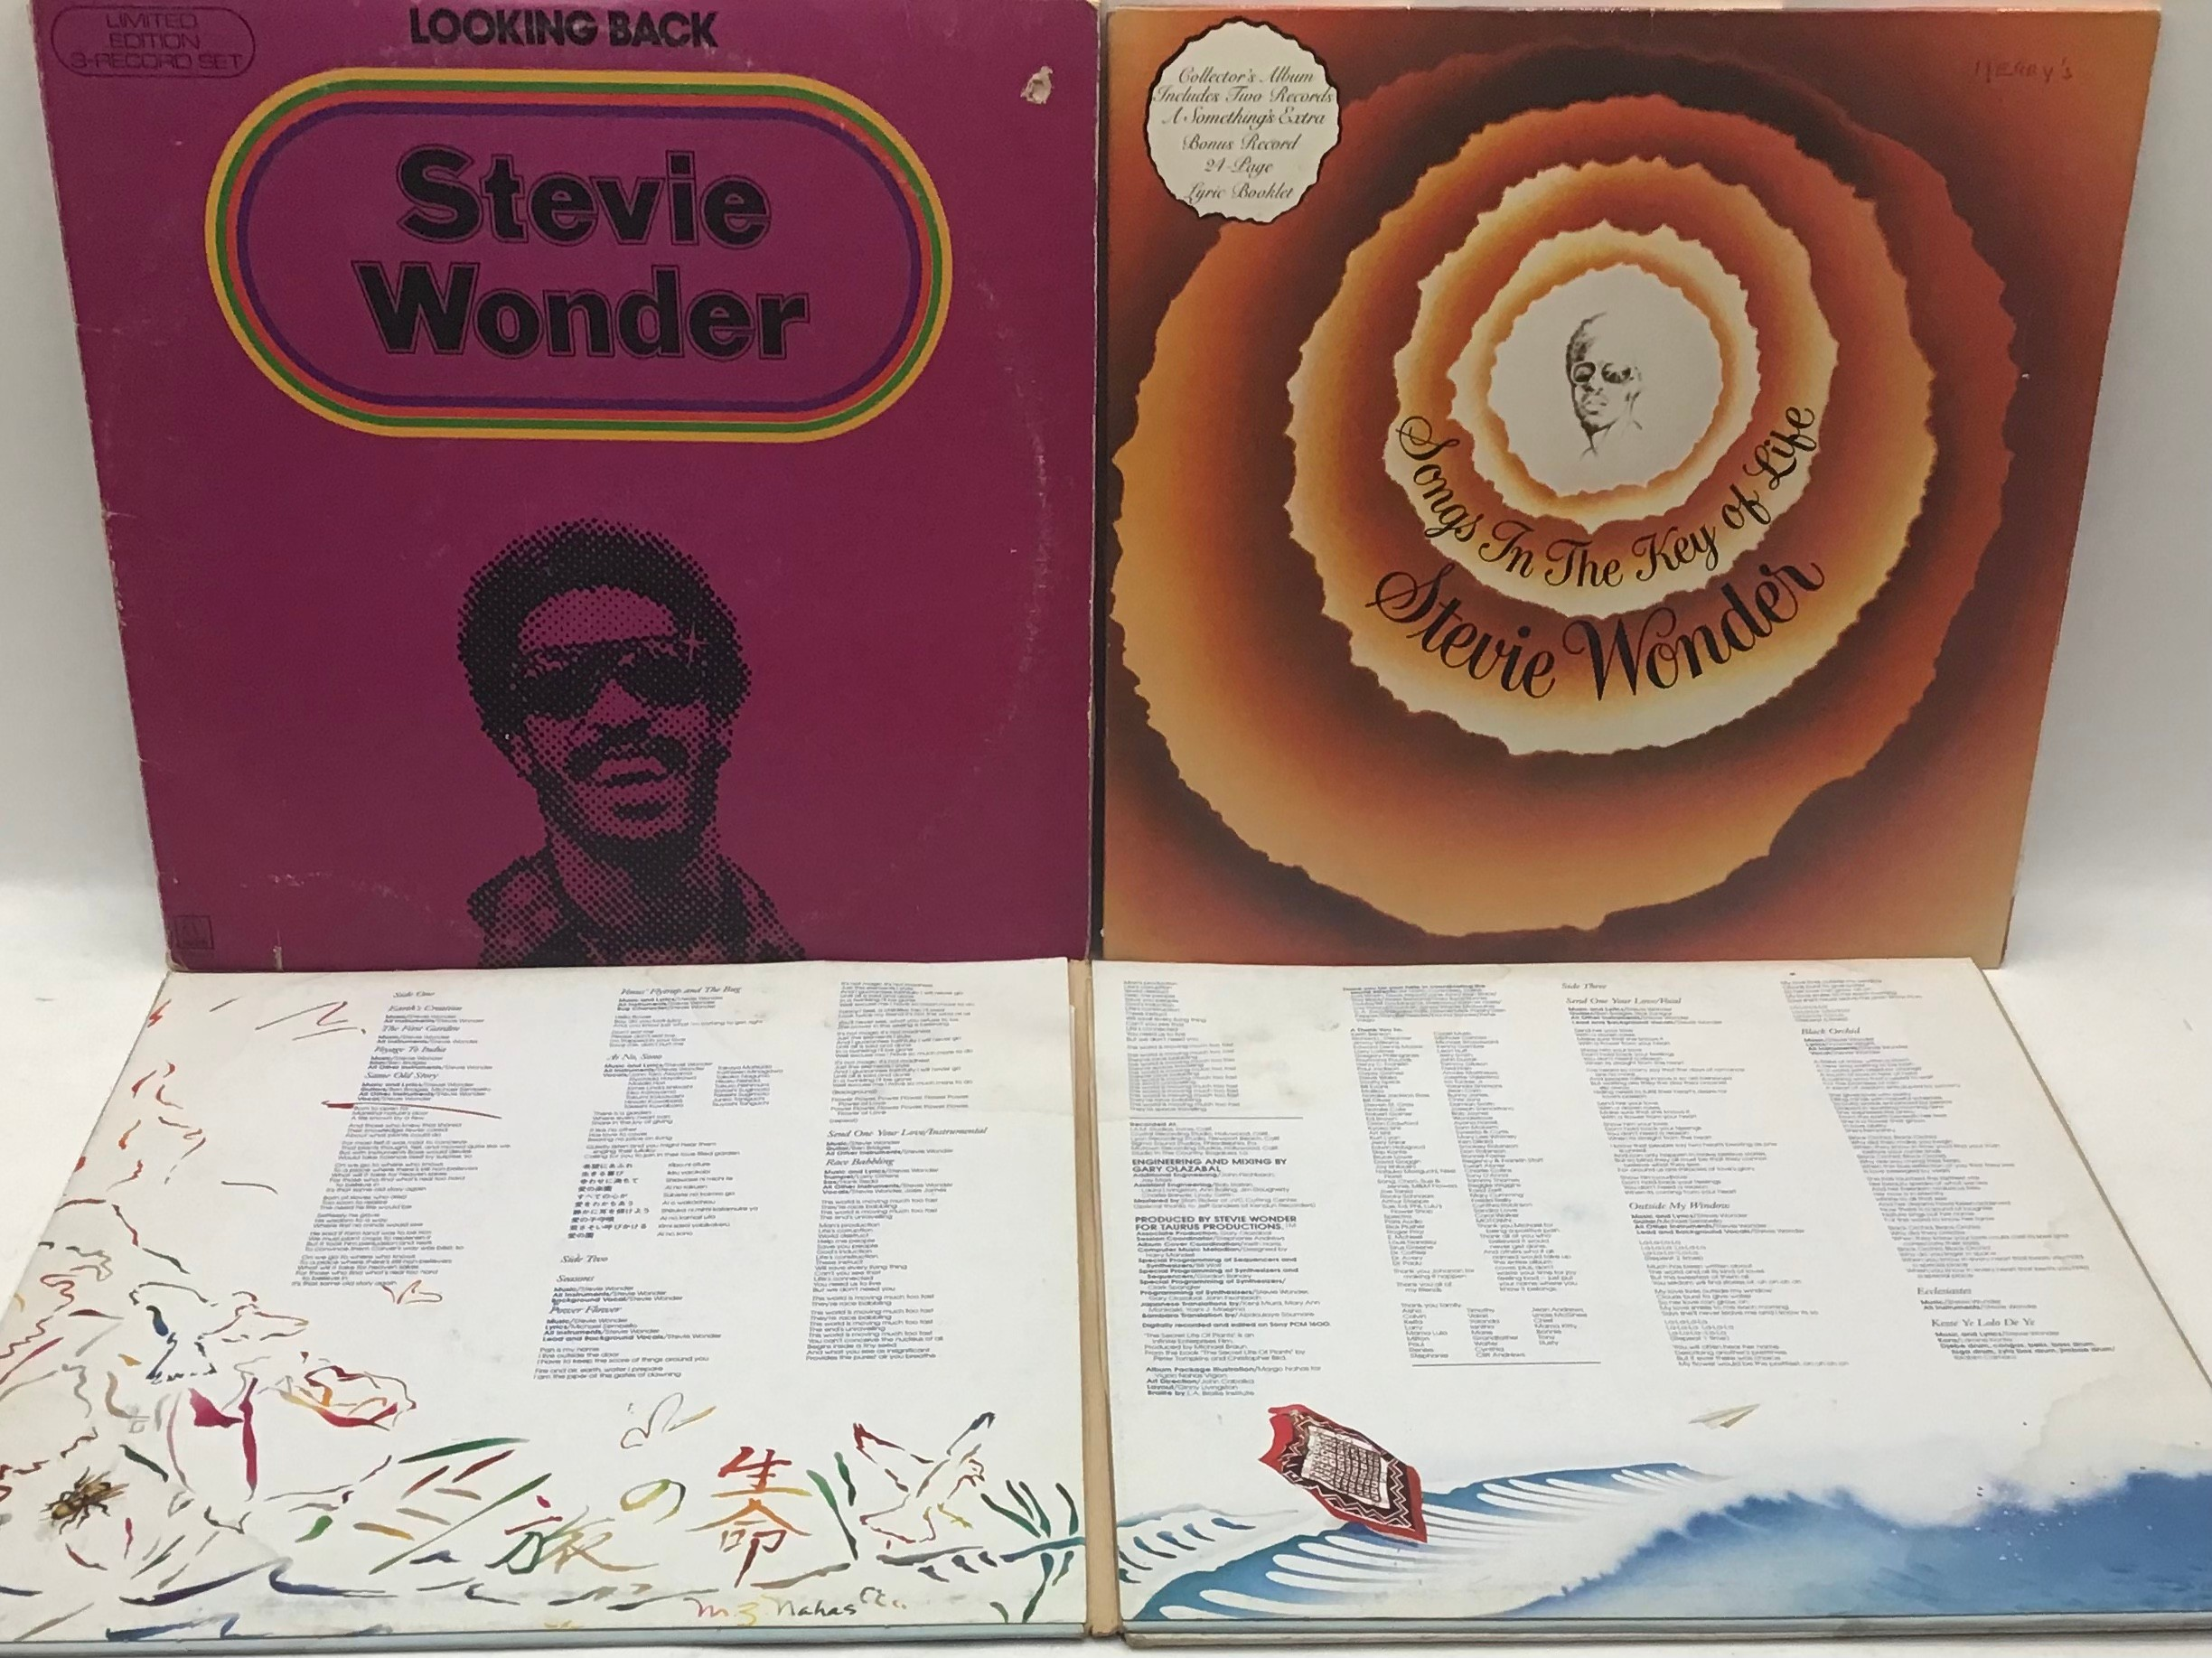 STEVIE WONDER VINYL LP RECORDS X 7. Found here in VG+ conditions with a demo copy of ?Where I?m - Image 4 of 5